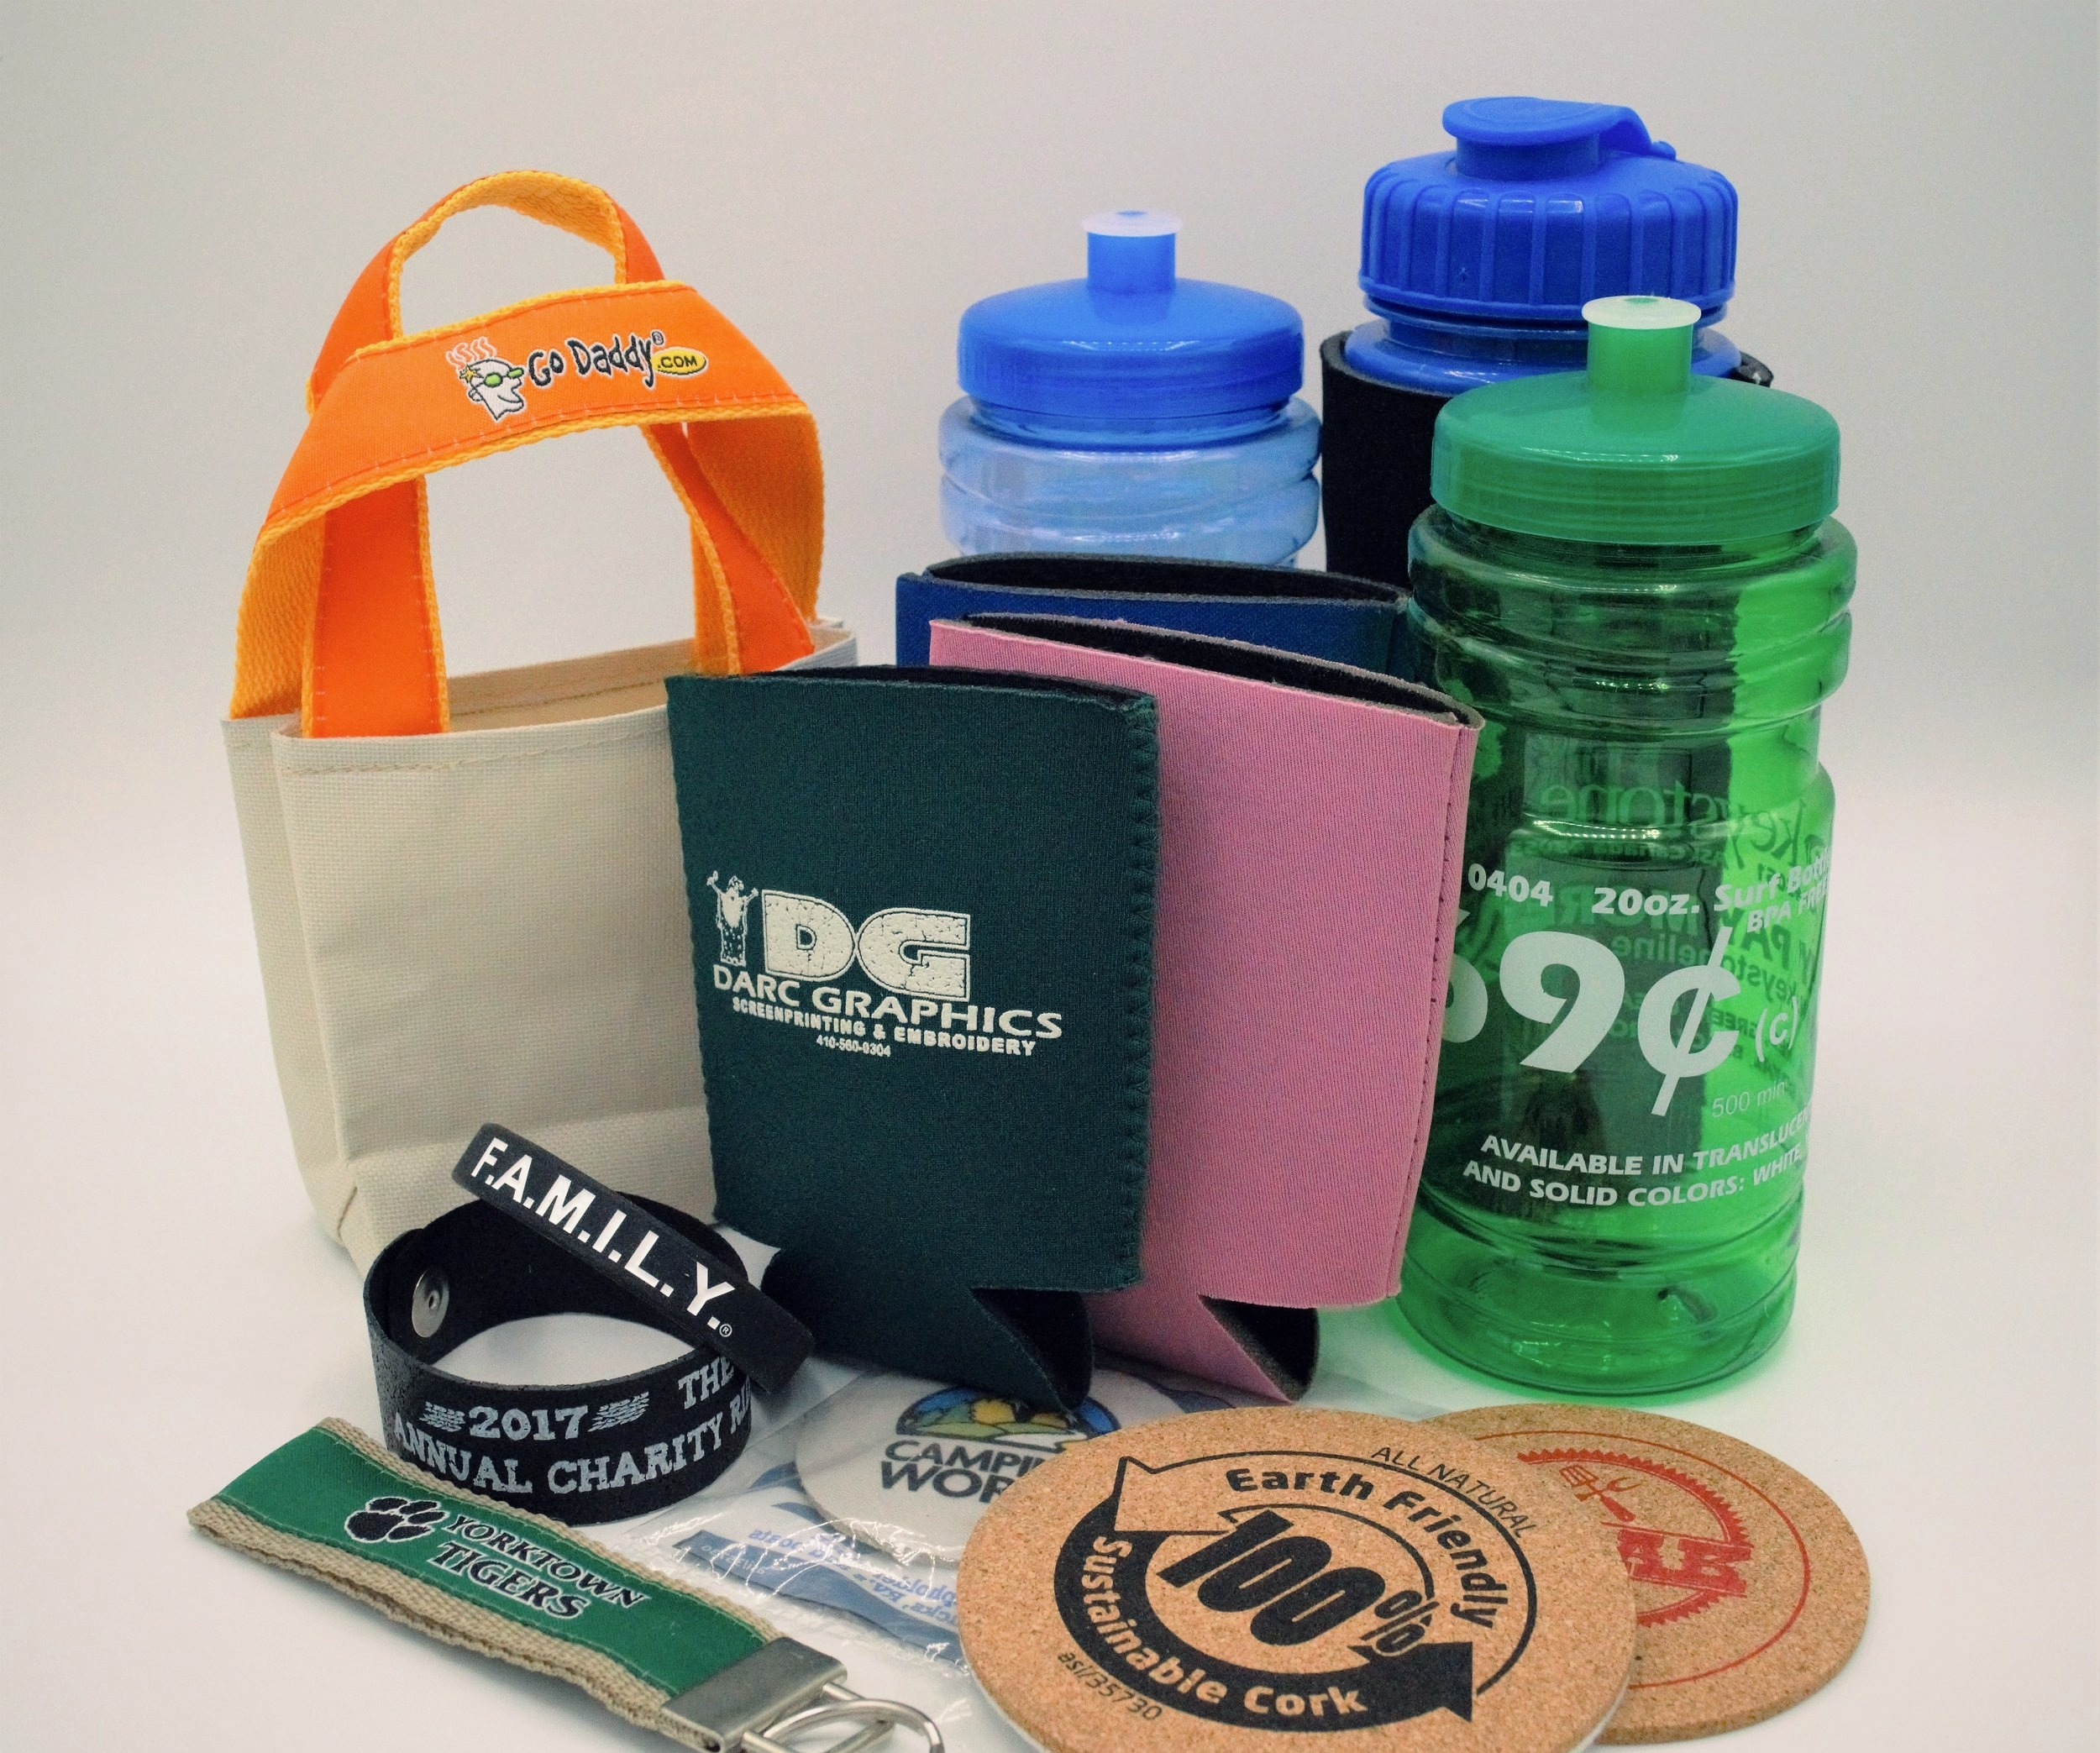 promoproducts.jpg